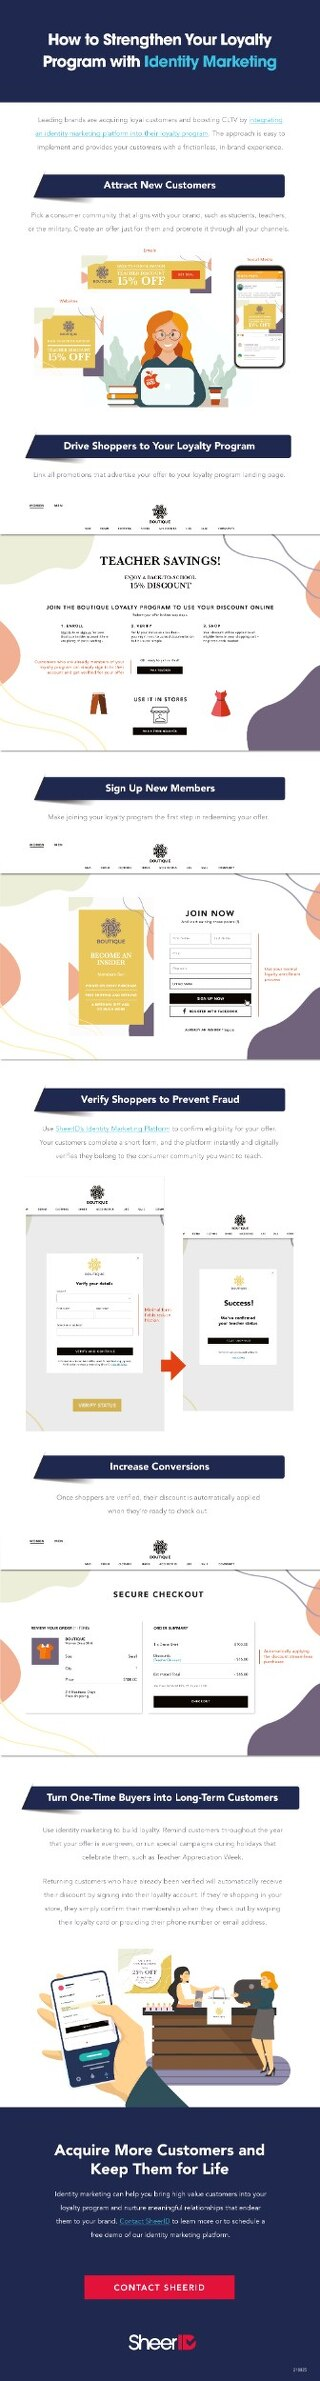 How to Strengthen Your Loyalty Program with Identity Marketing